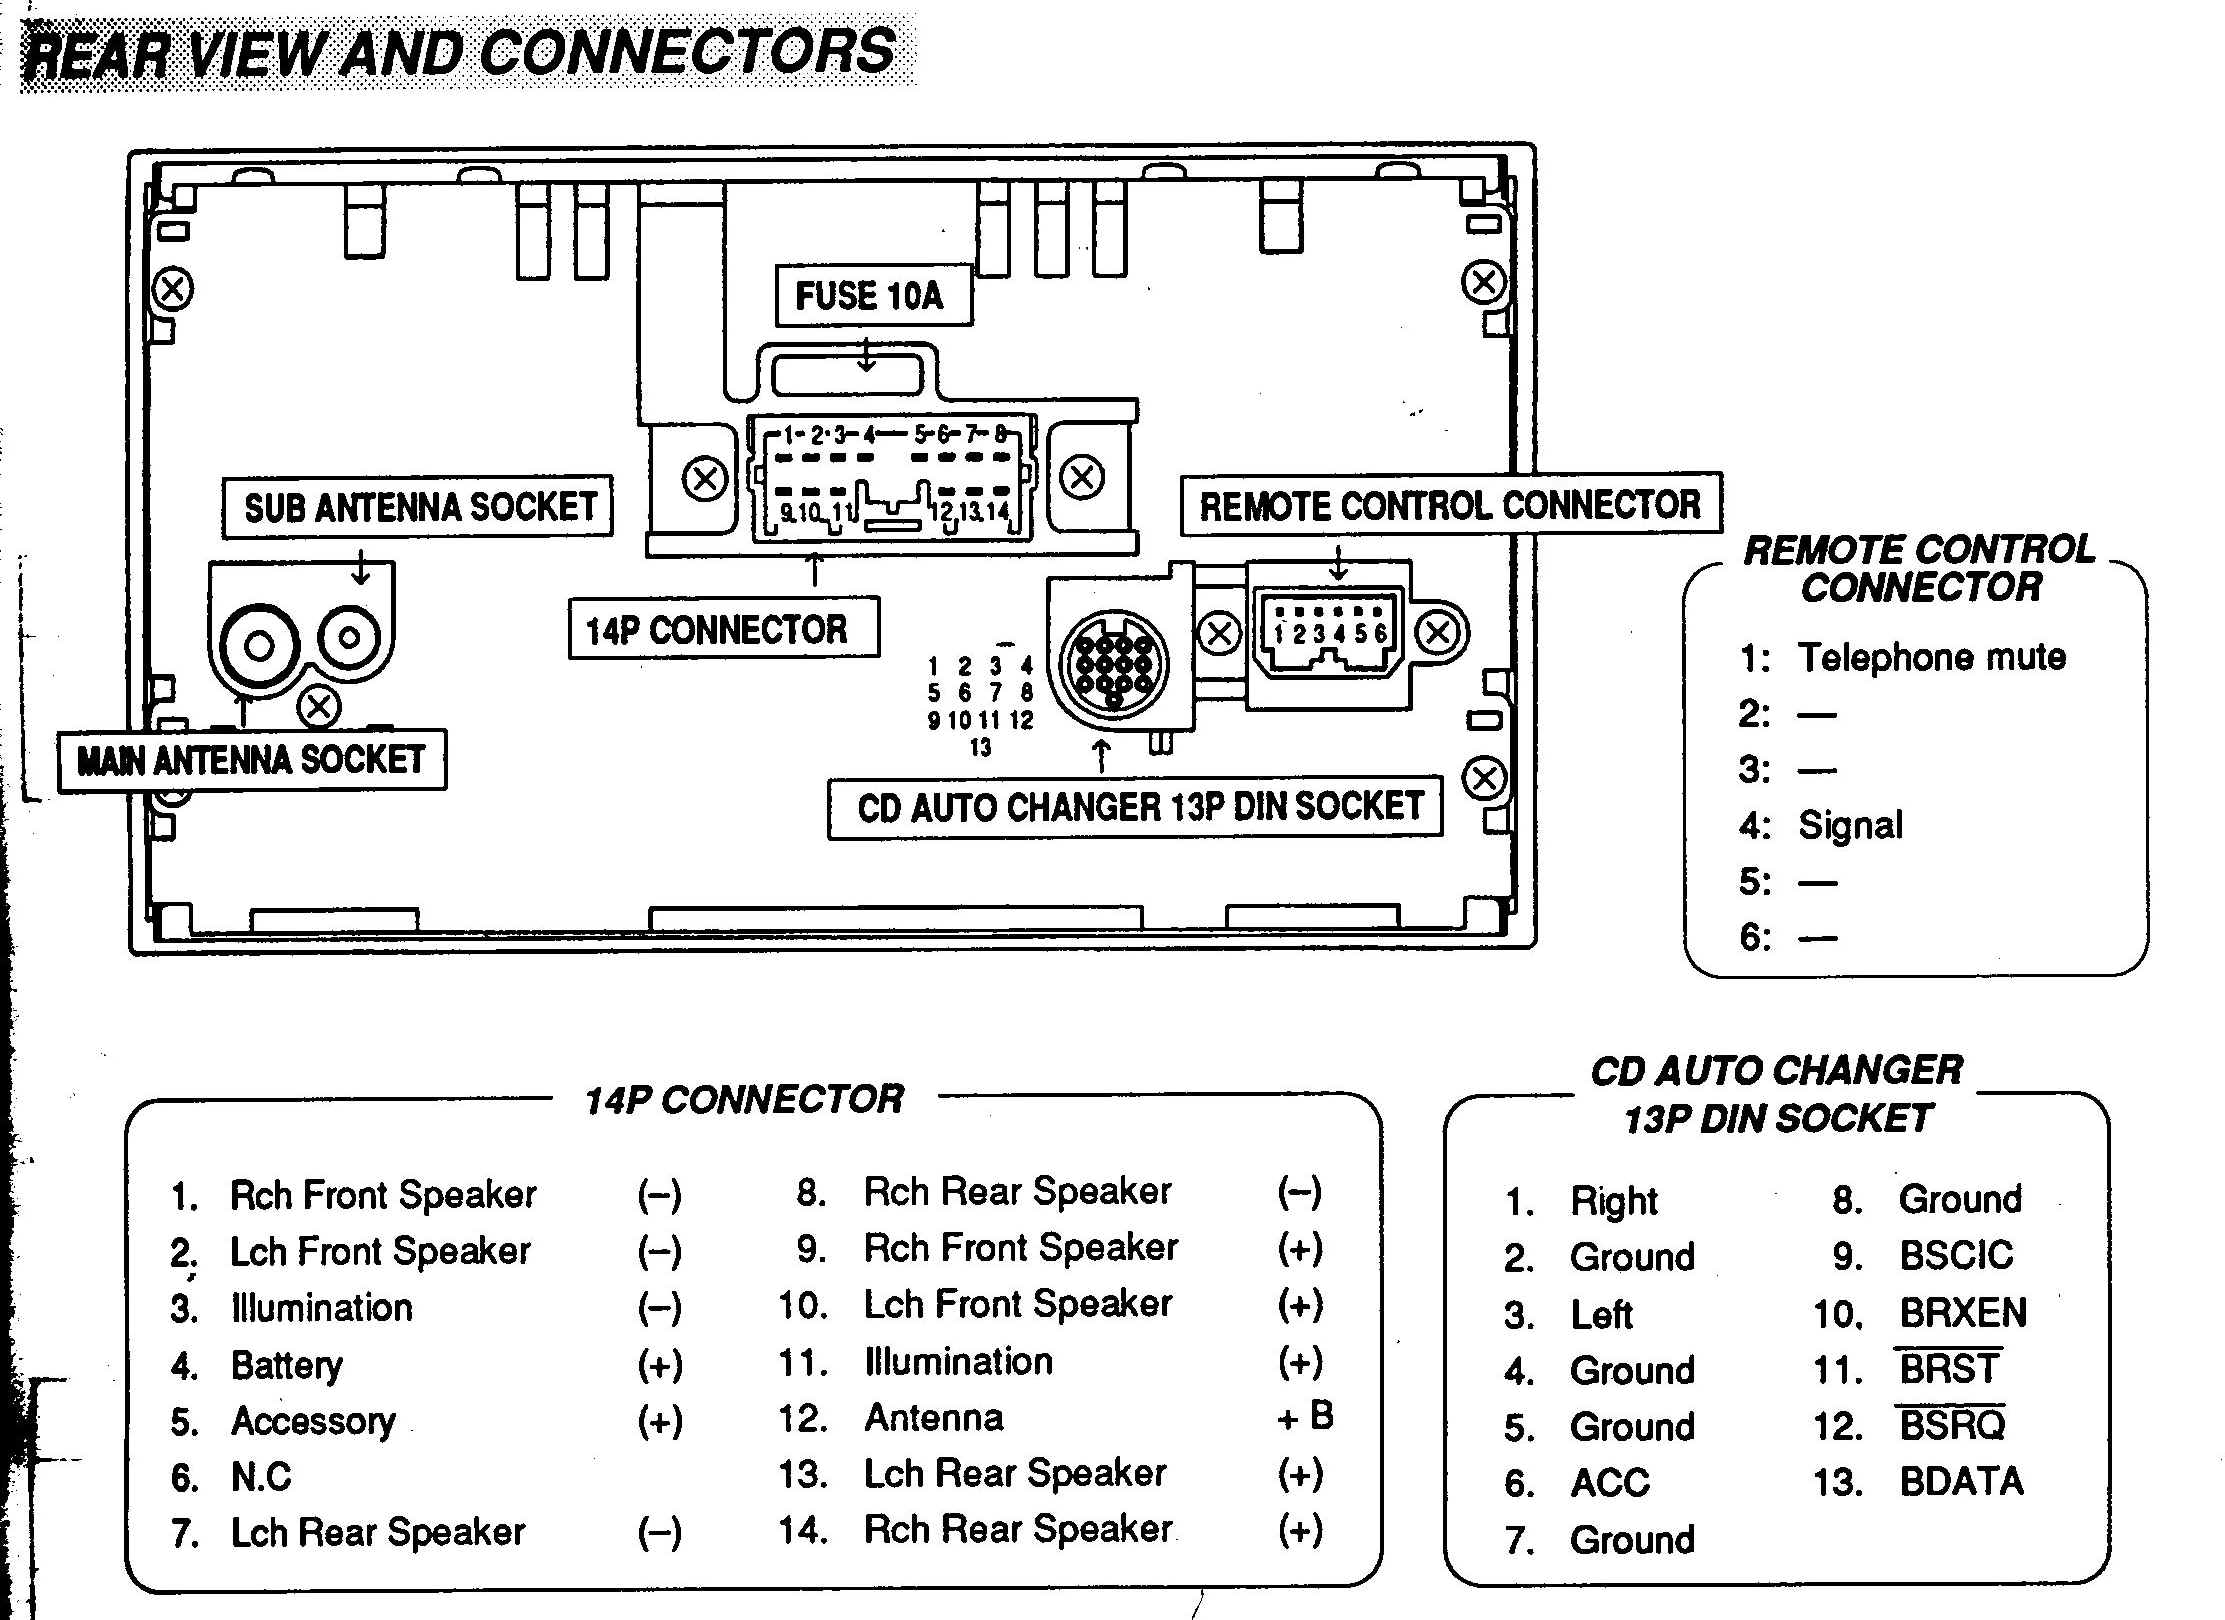 bose radio wiring diagram car audio wire diagram codes mitsubishi factory car stereo 2006 gmc sierra bose radio wiring diagram car audio wire diagram codes mitsubishi